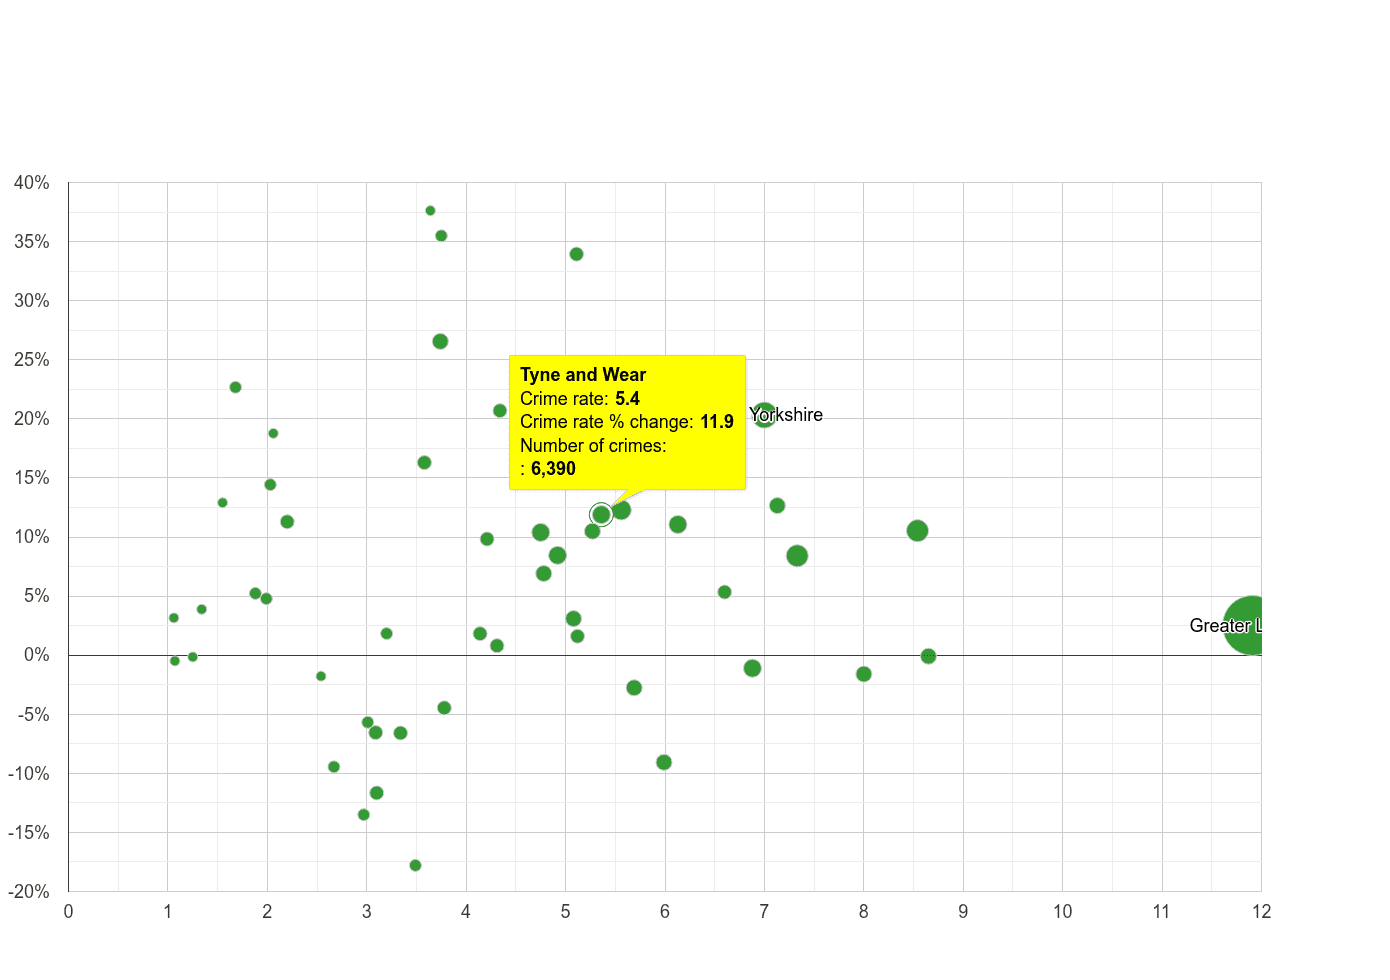 Tyne and Wear vehicle crime rate compared to other counties